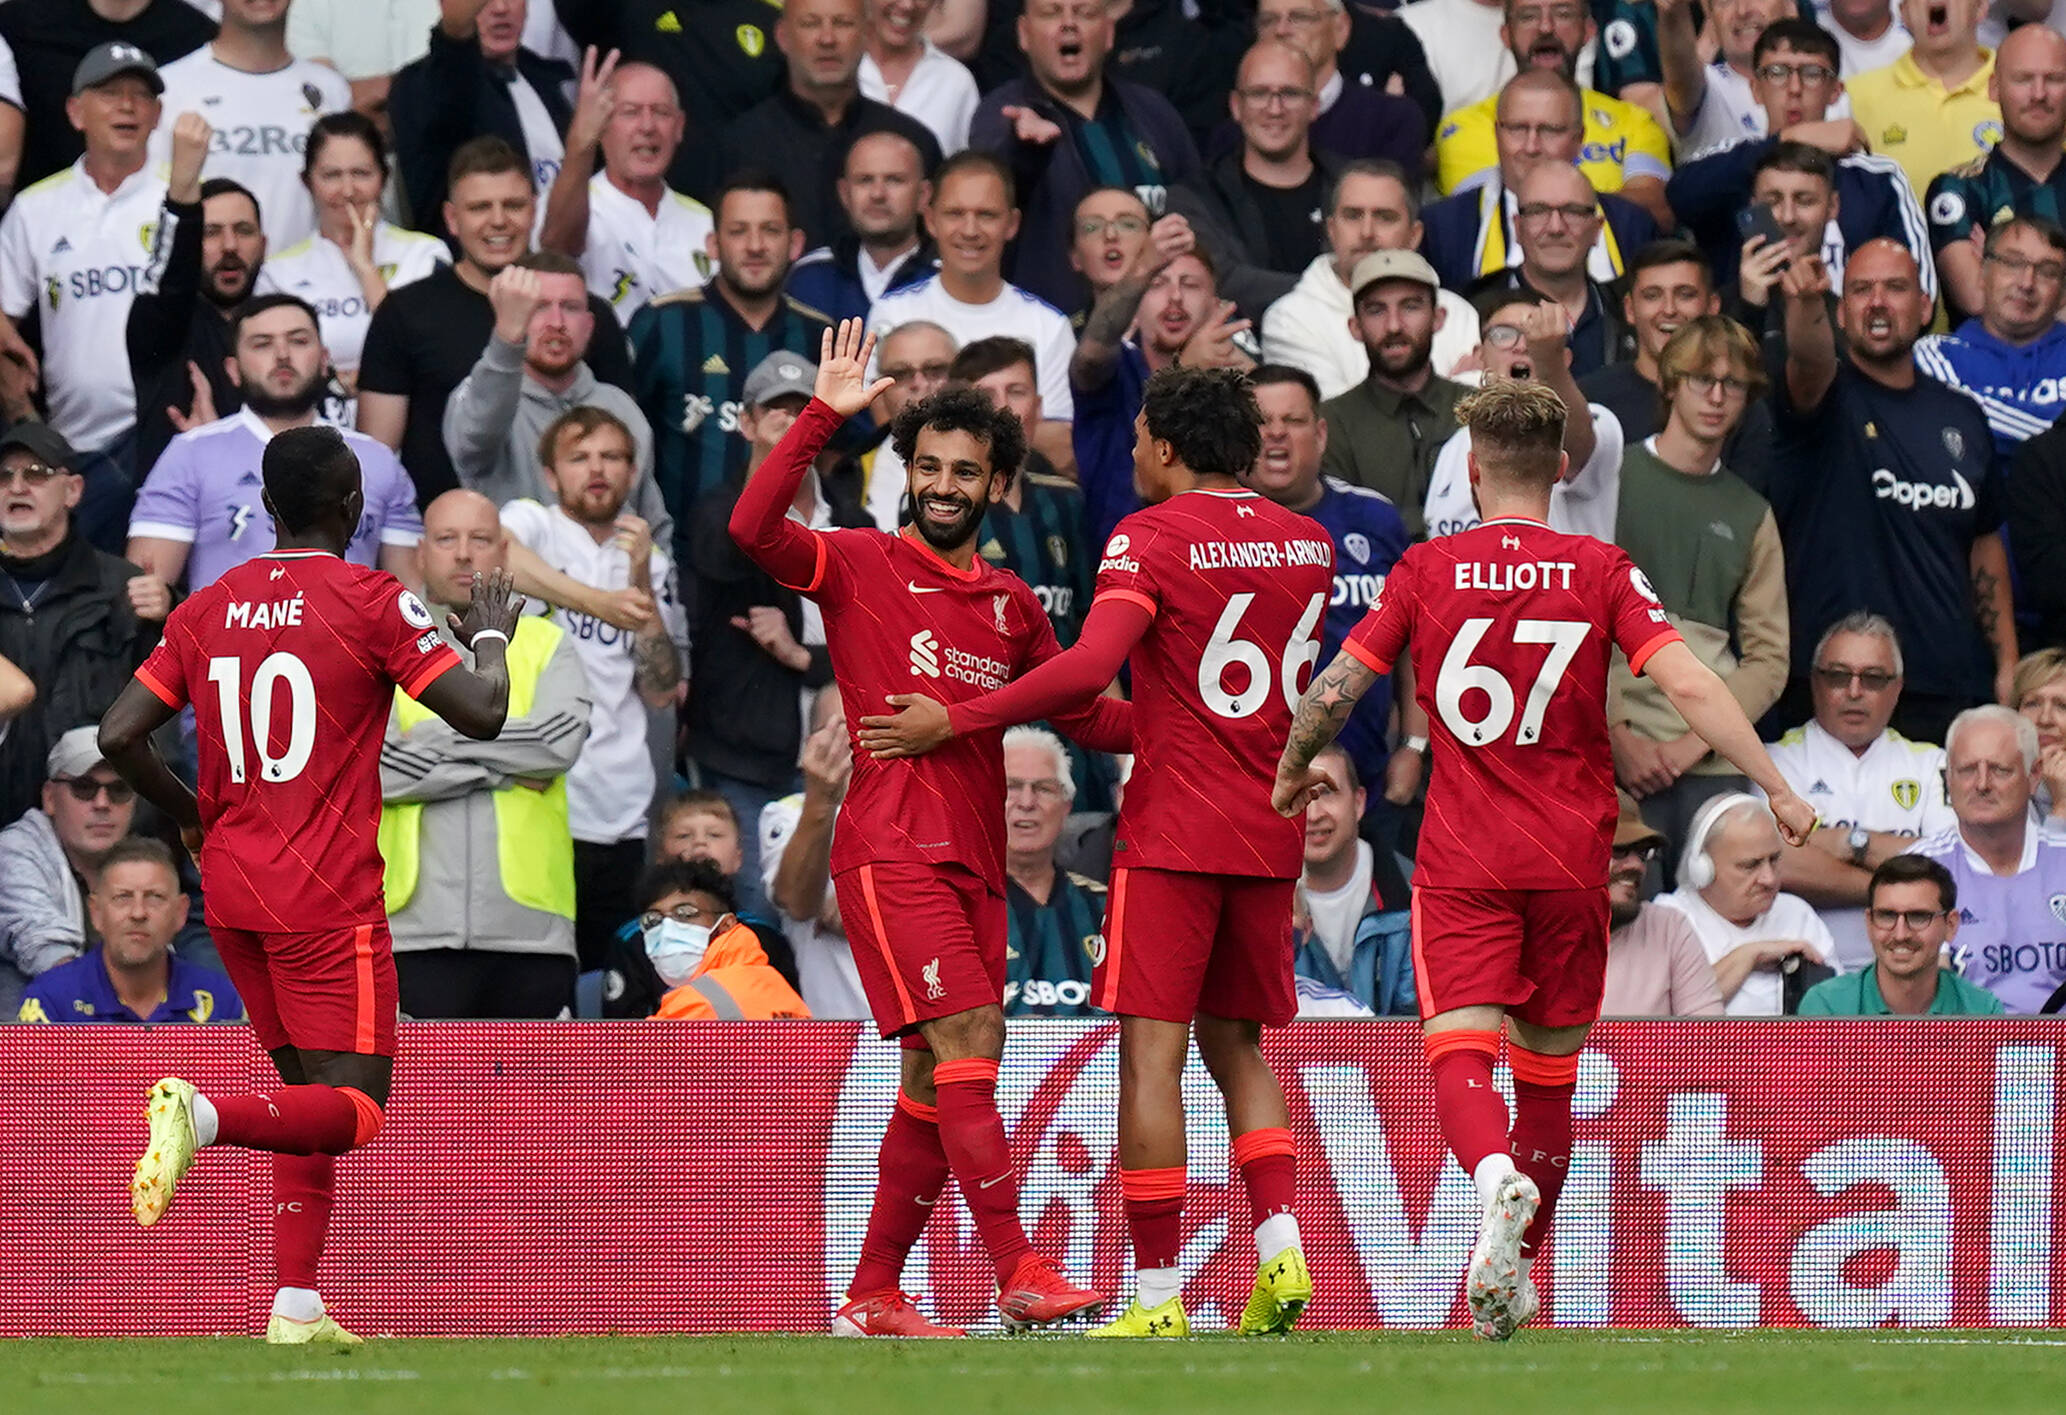 Liverpool players celebrating a goal against Leeds United